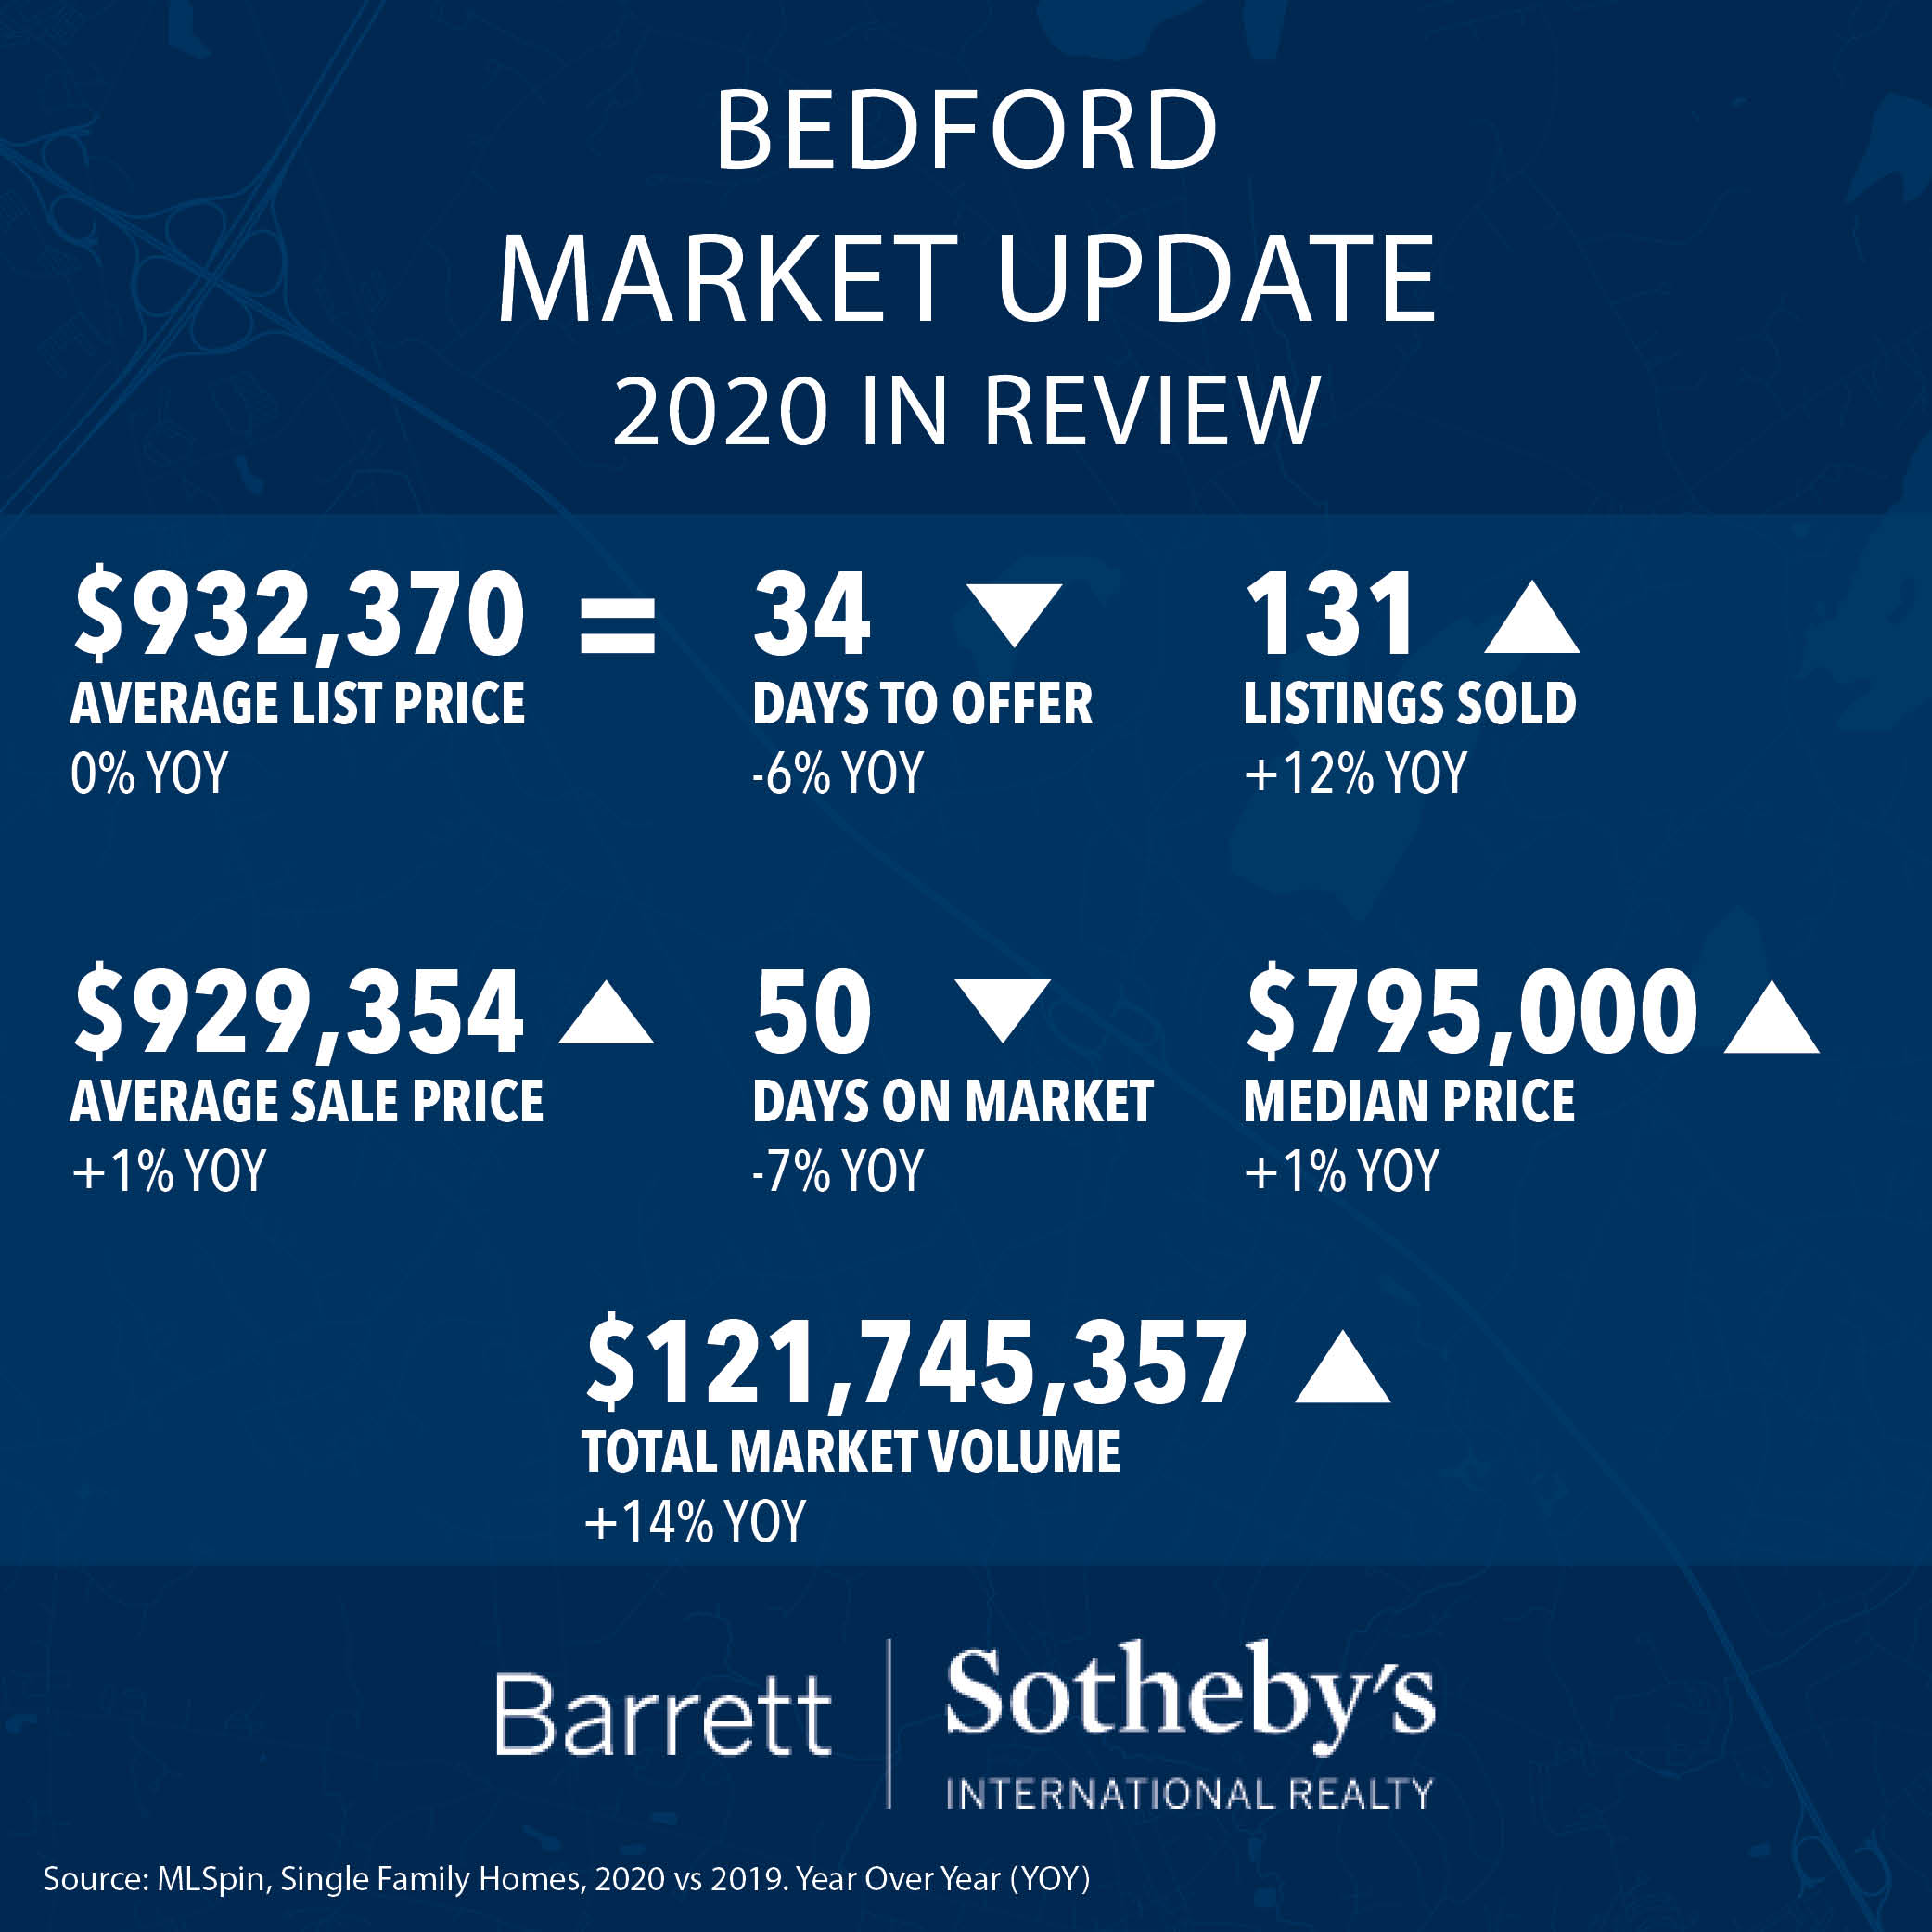 Bedford Market Update: 2020 in Review